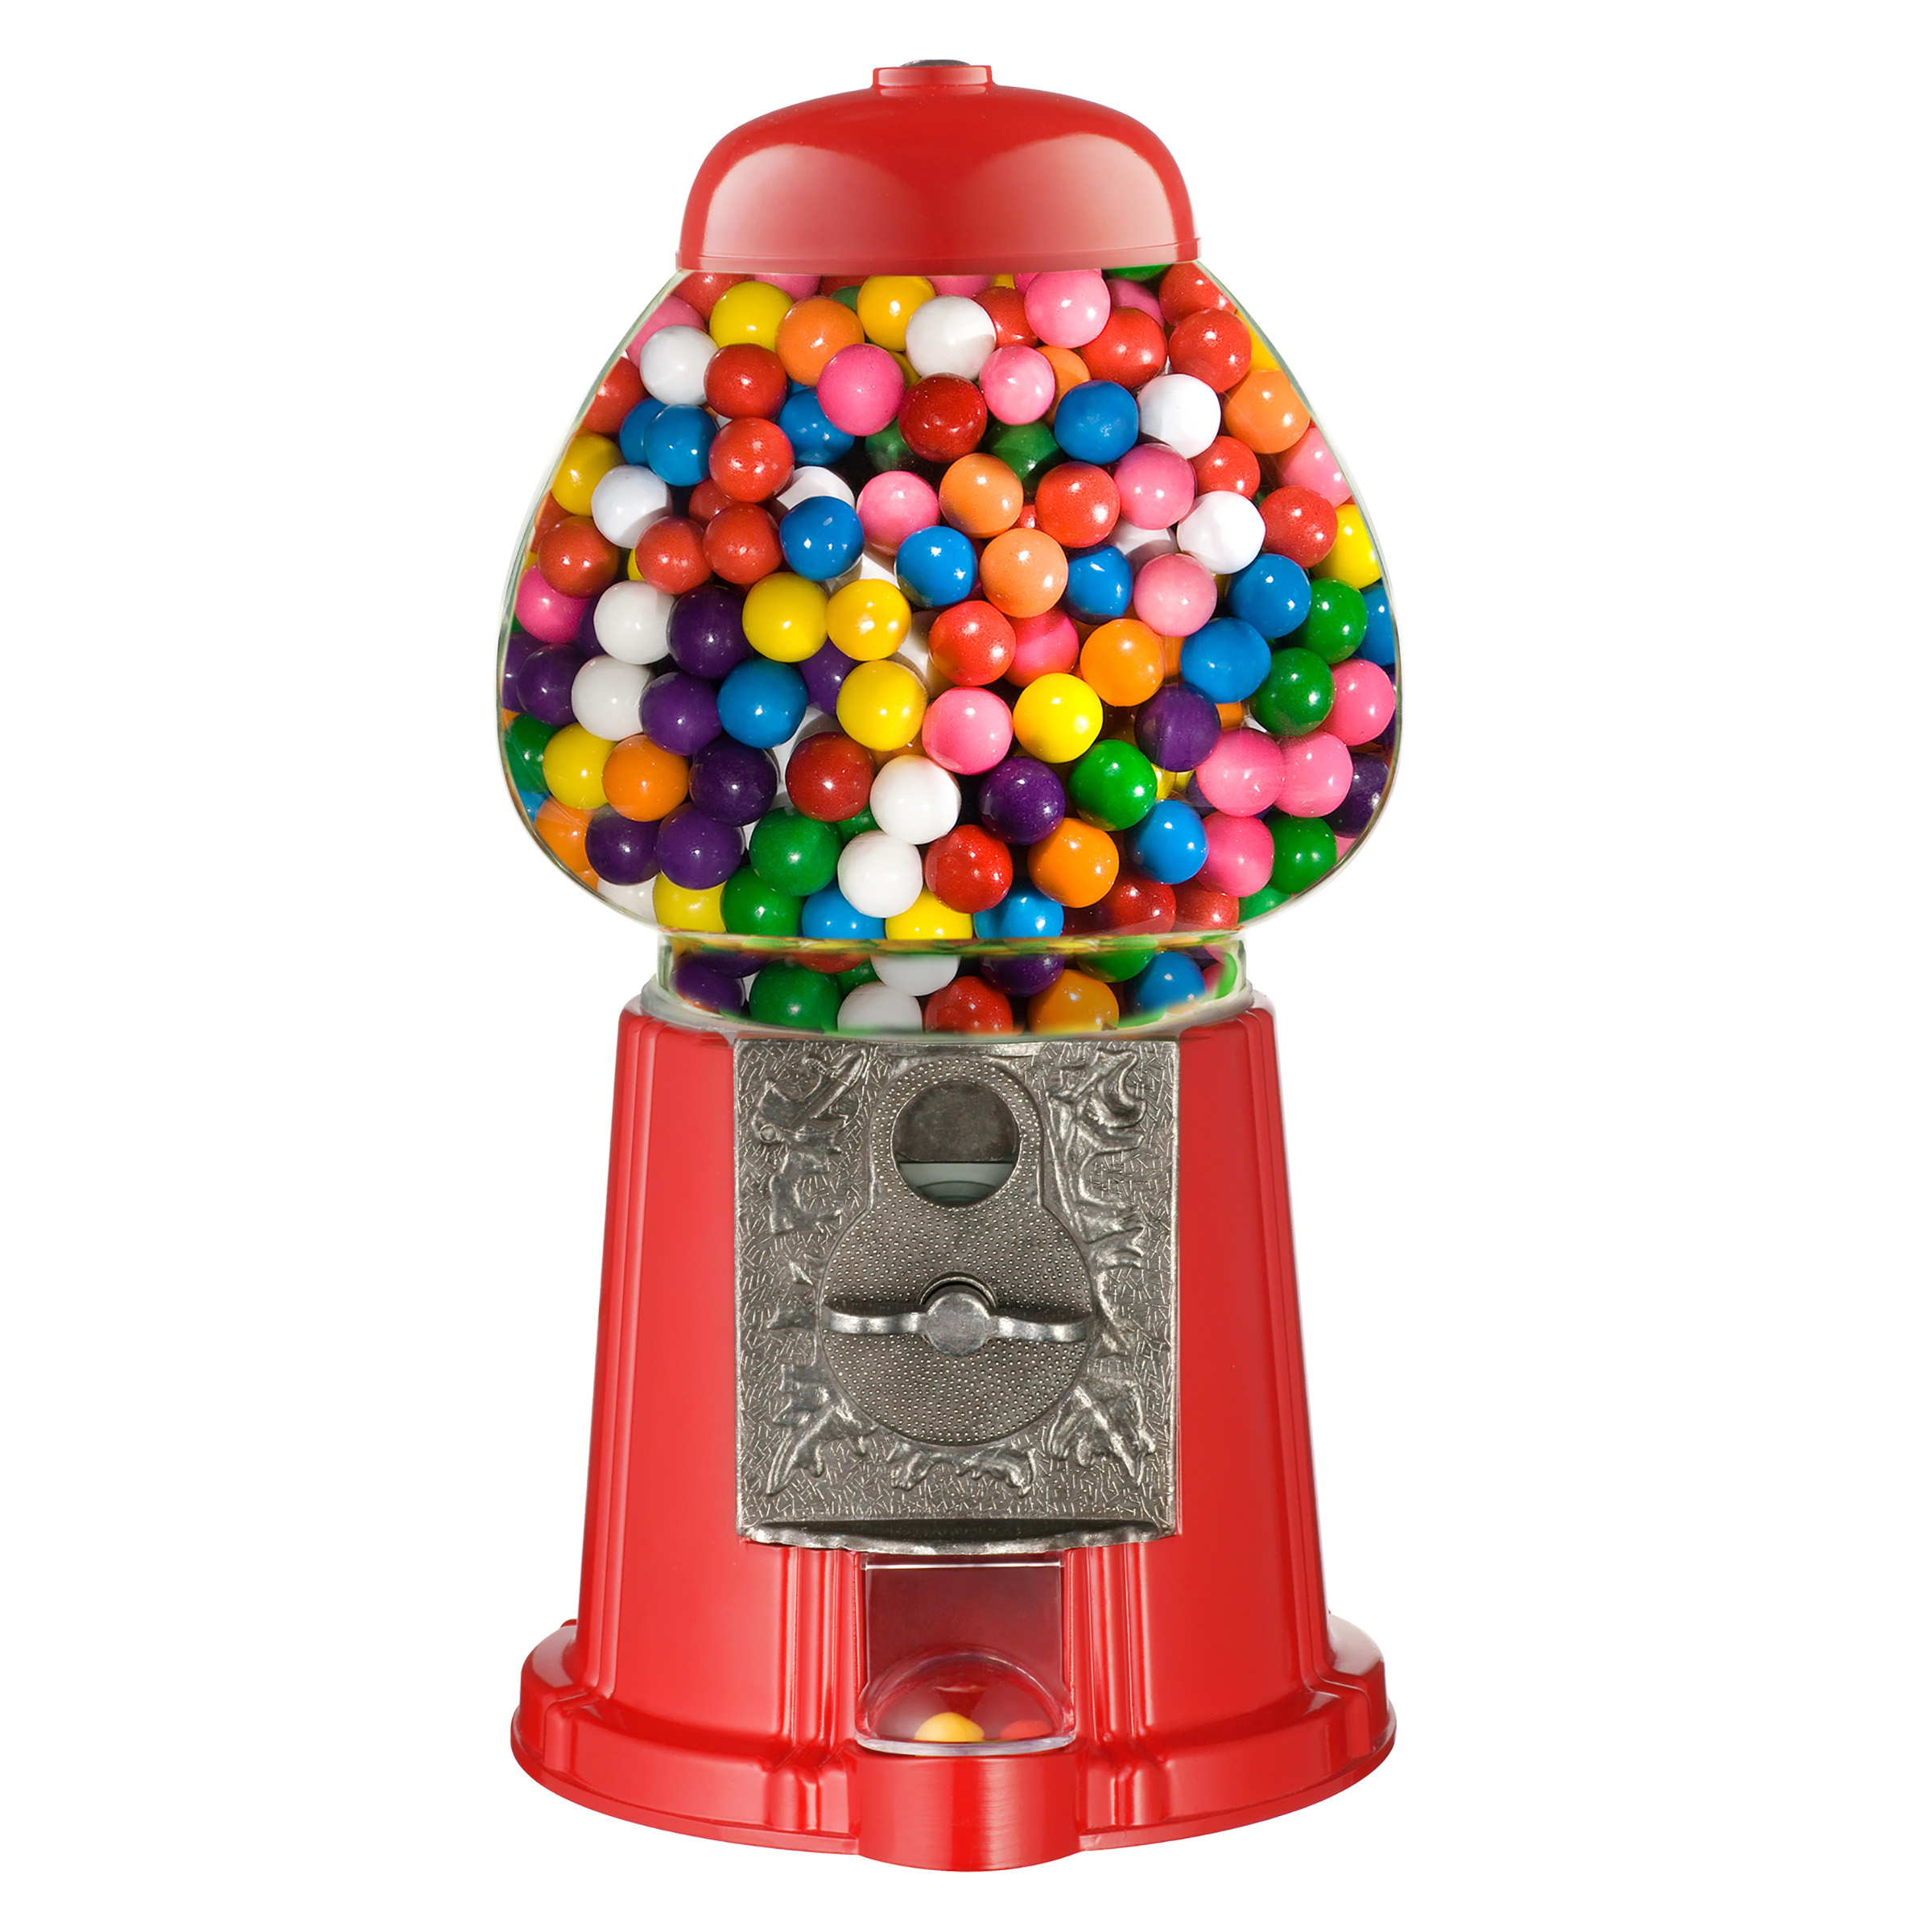 "15"" Old Fashioned Vintage Candy Gumball Machine Bank by Great Northern Popcorn"